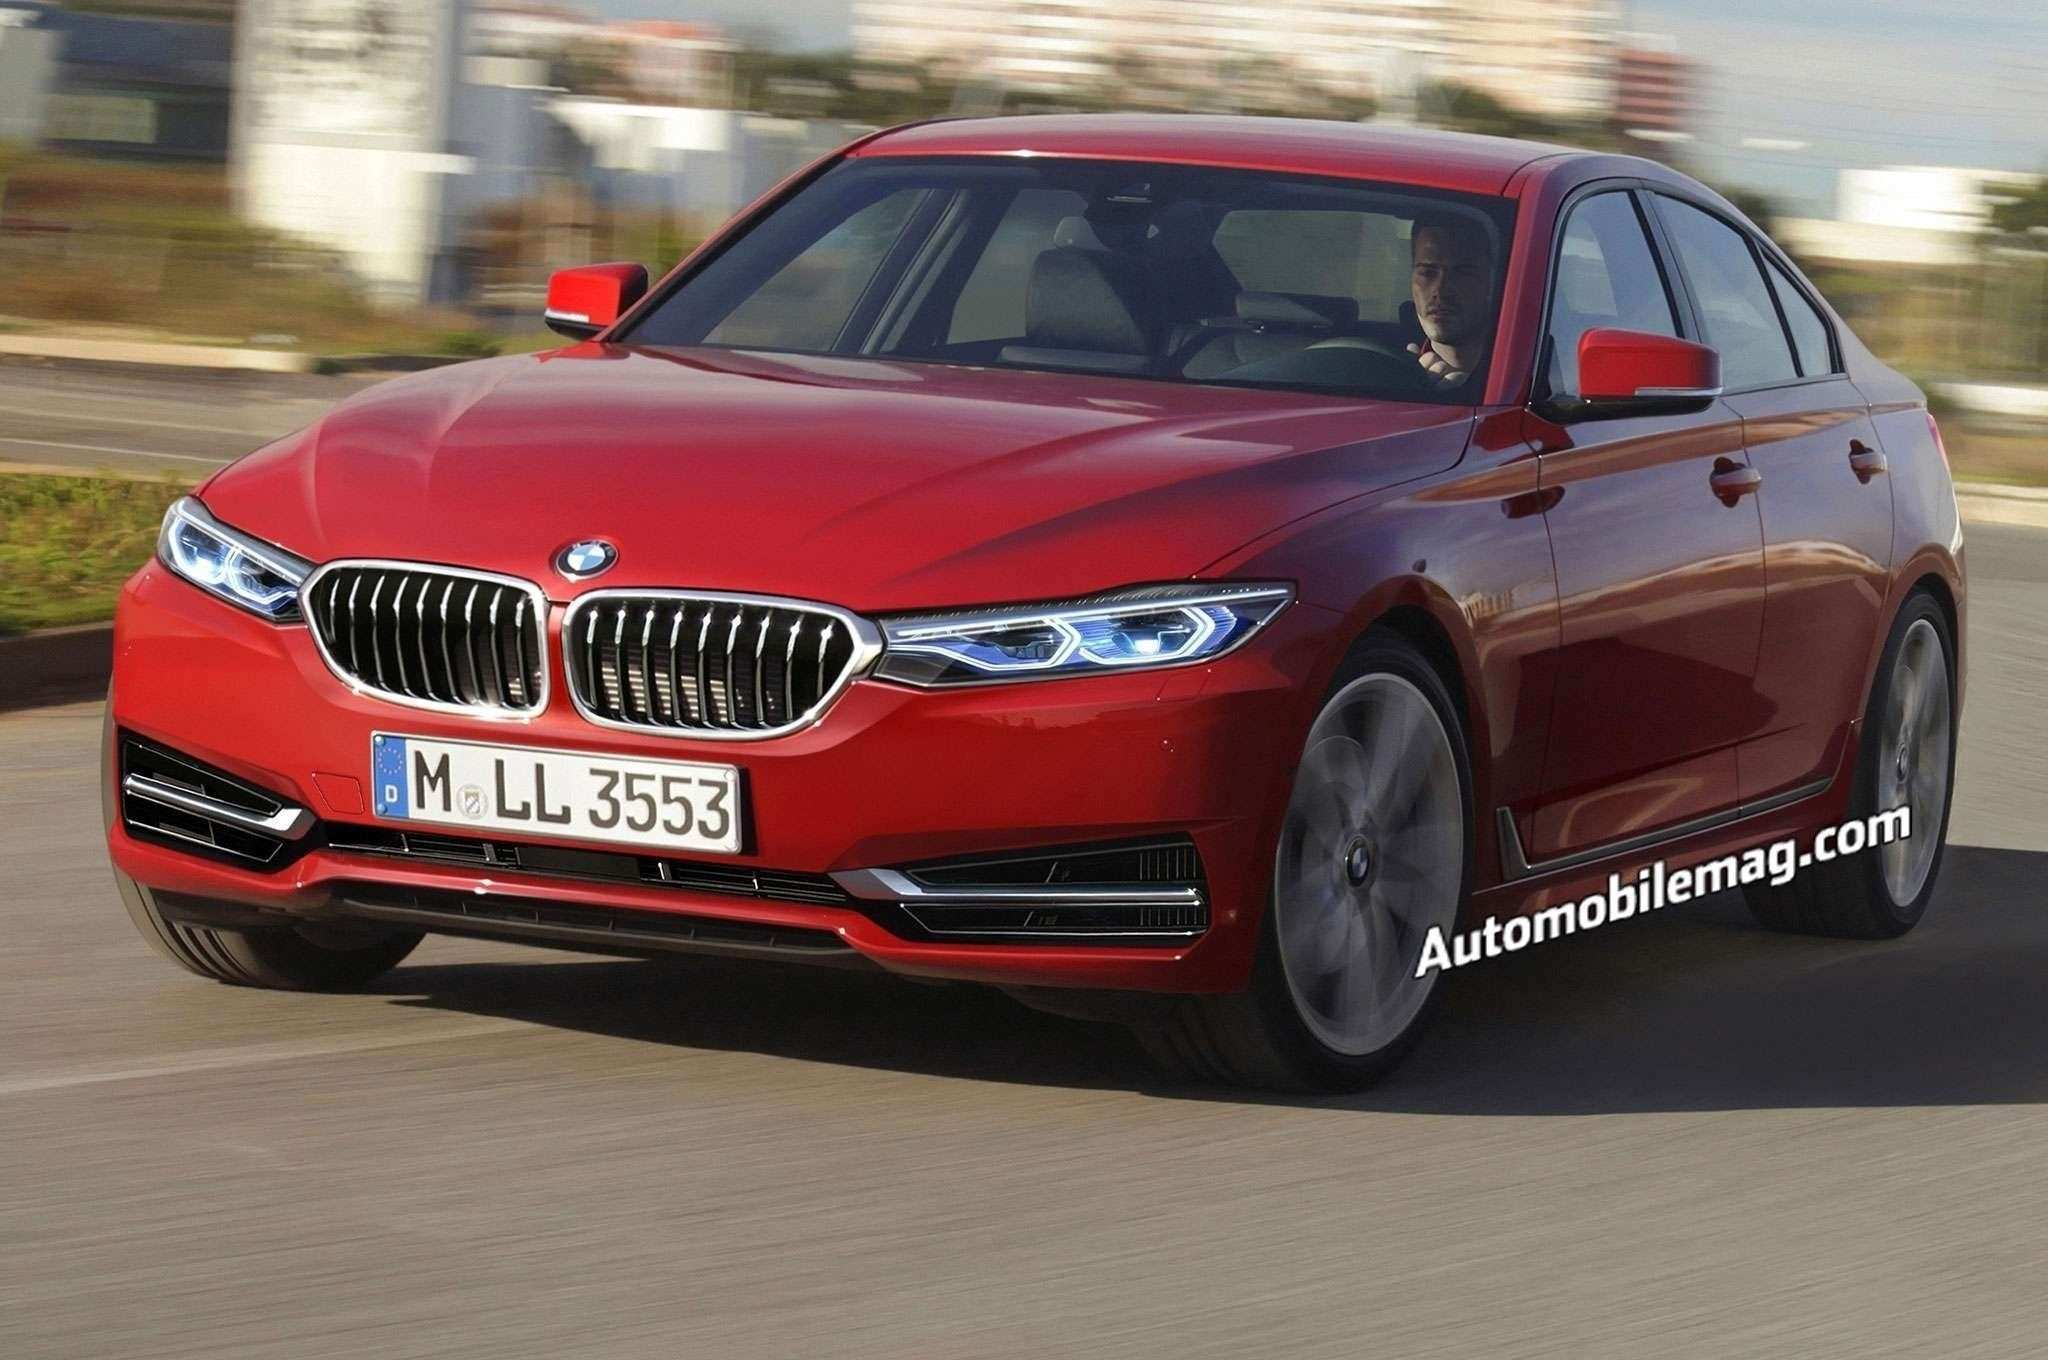 78 All New 2020 BMW 335i Review And Release Date